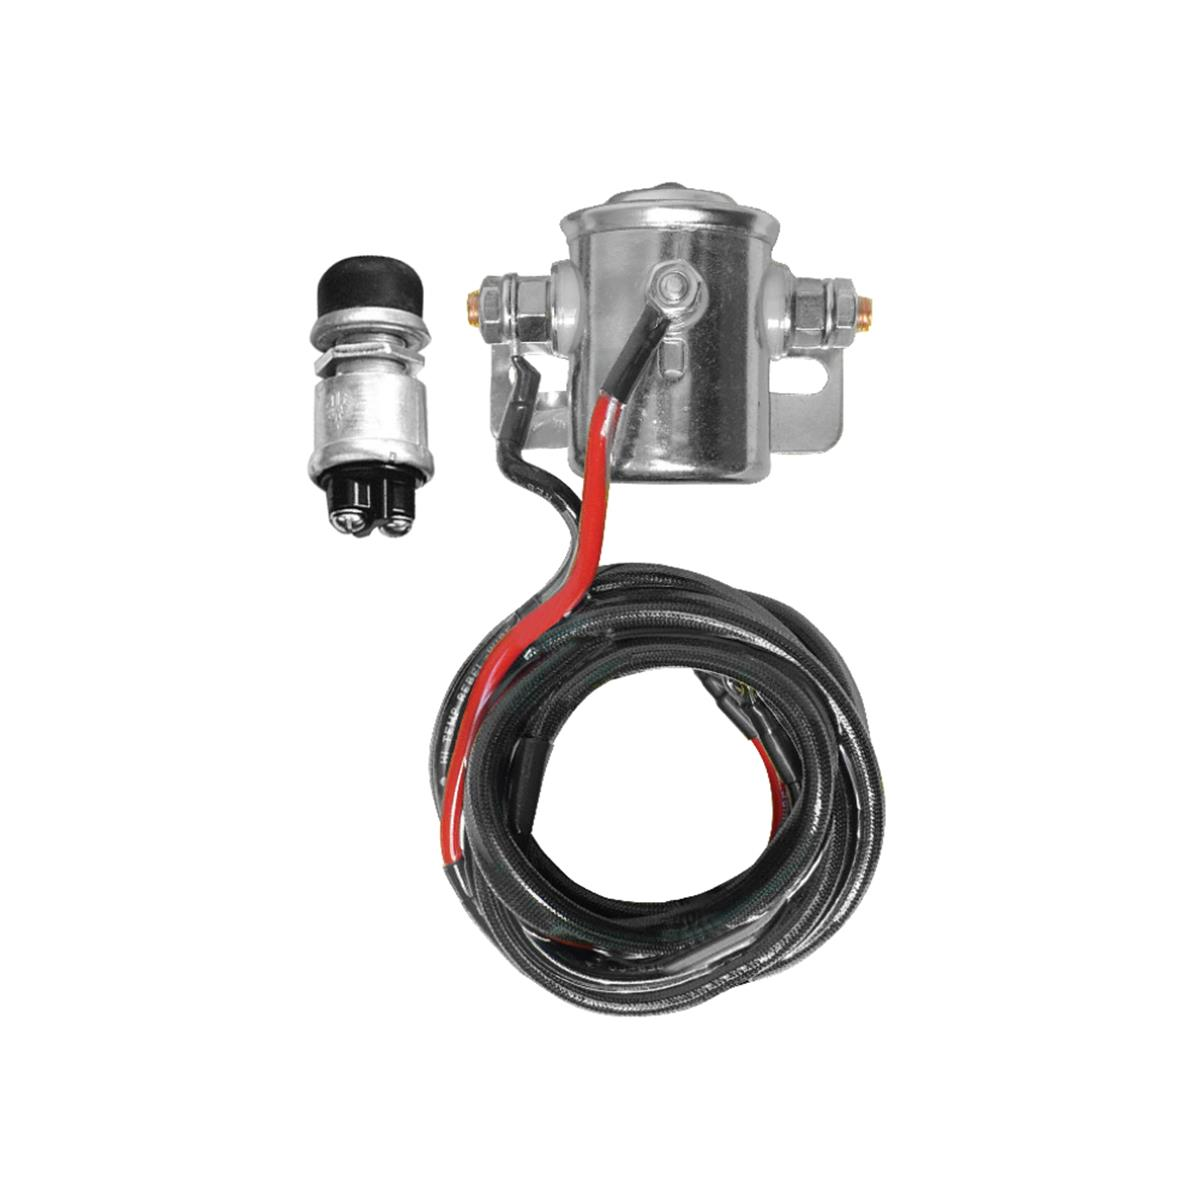 HD Starter Solenoid Kit with Weatherproof Firewall Starter Button